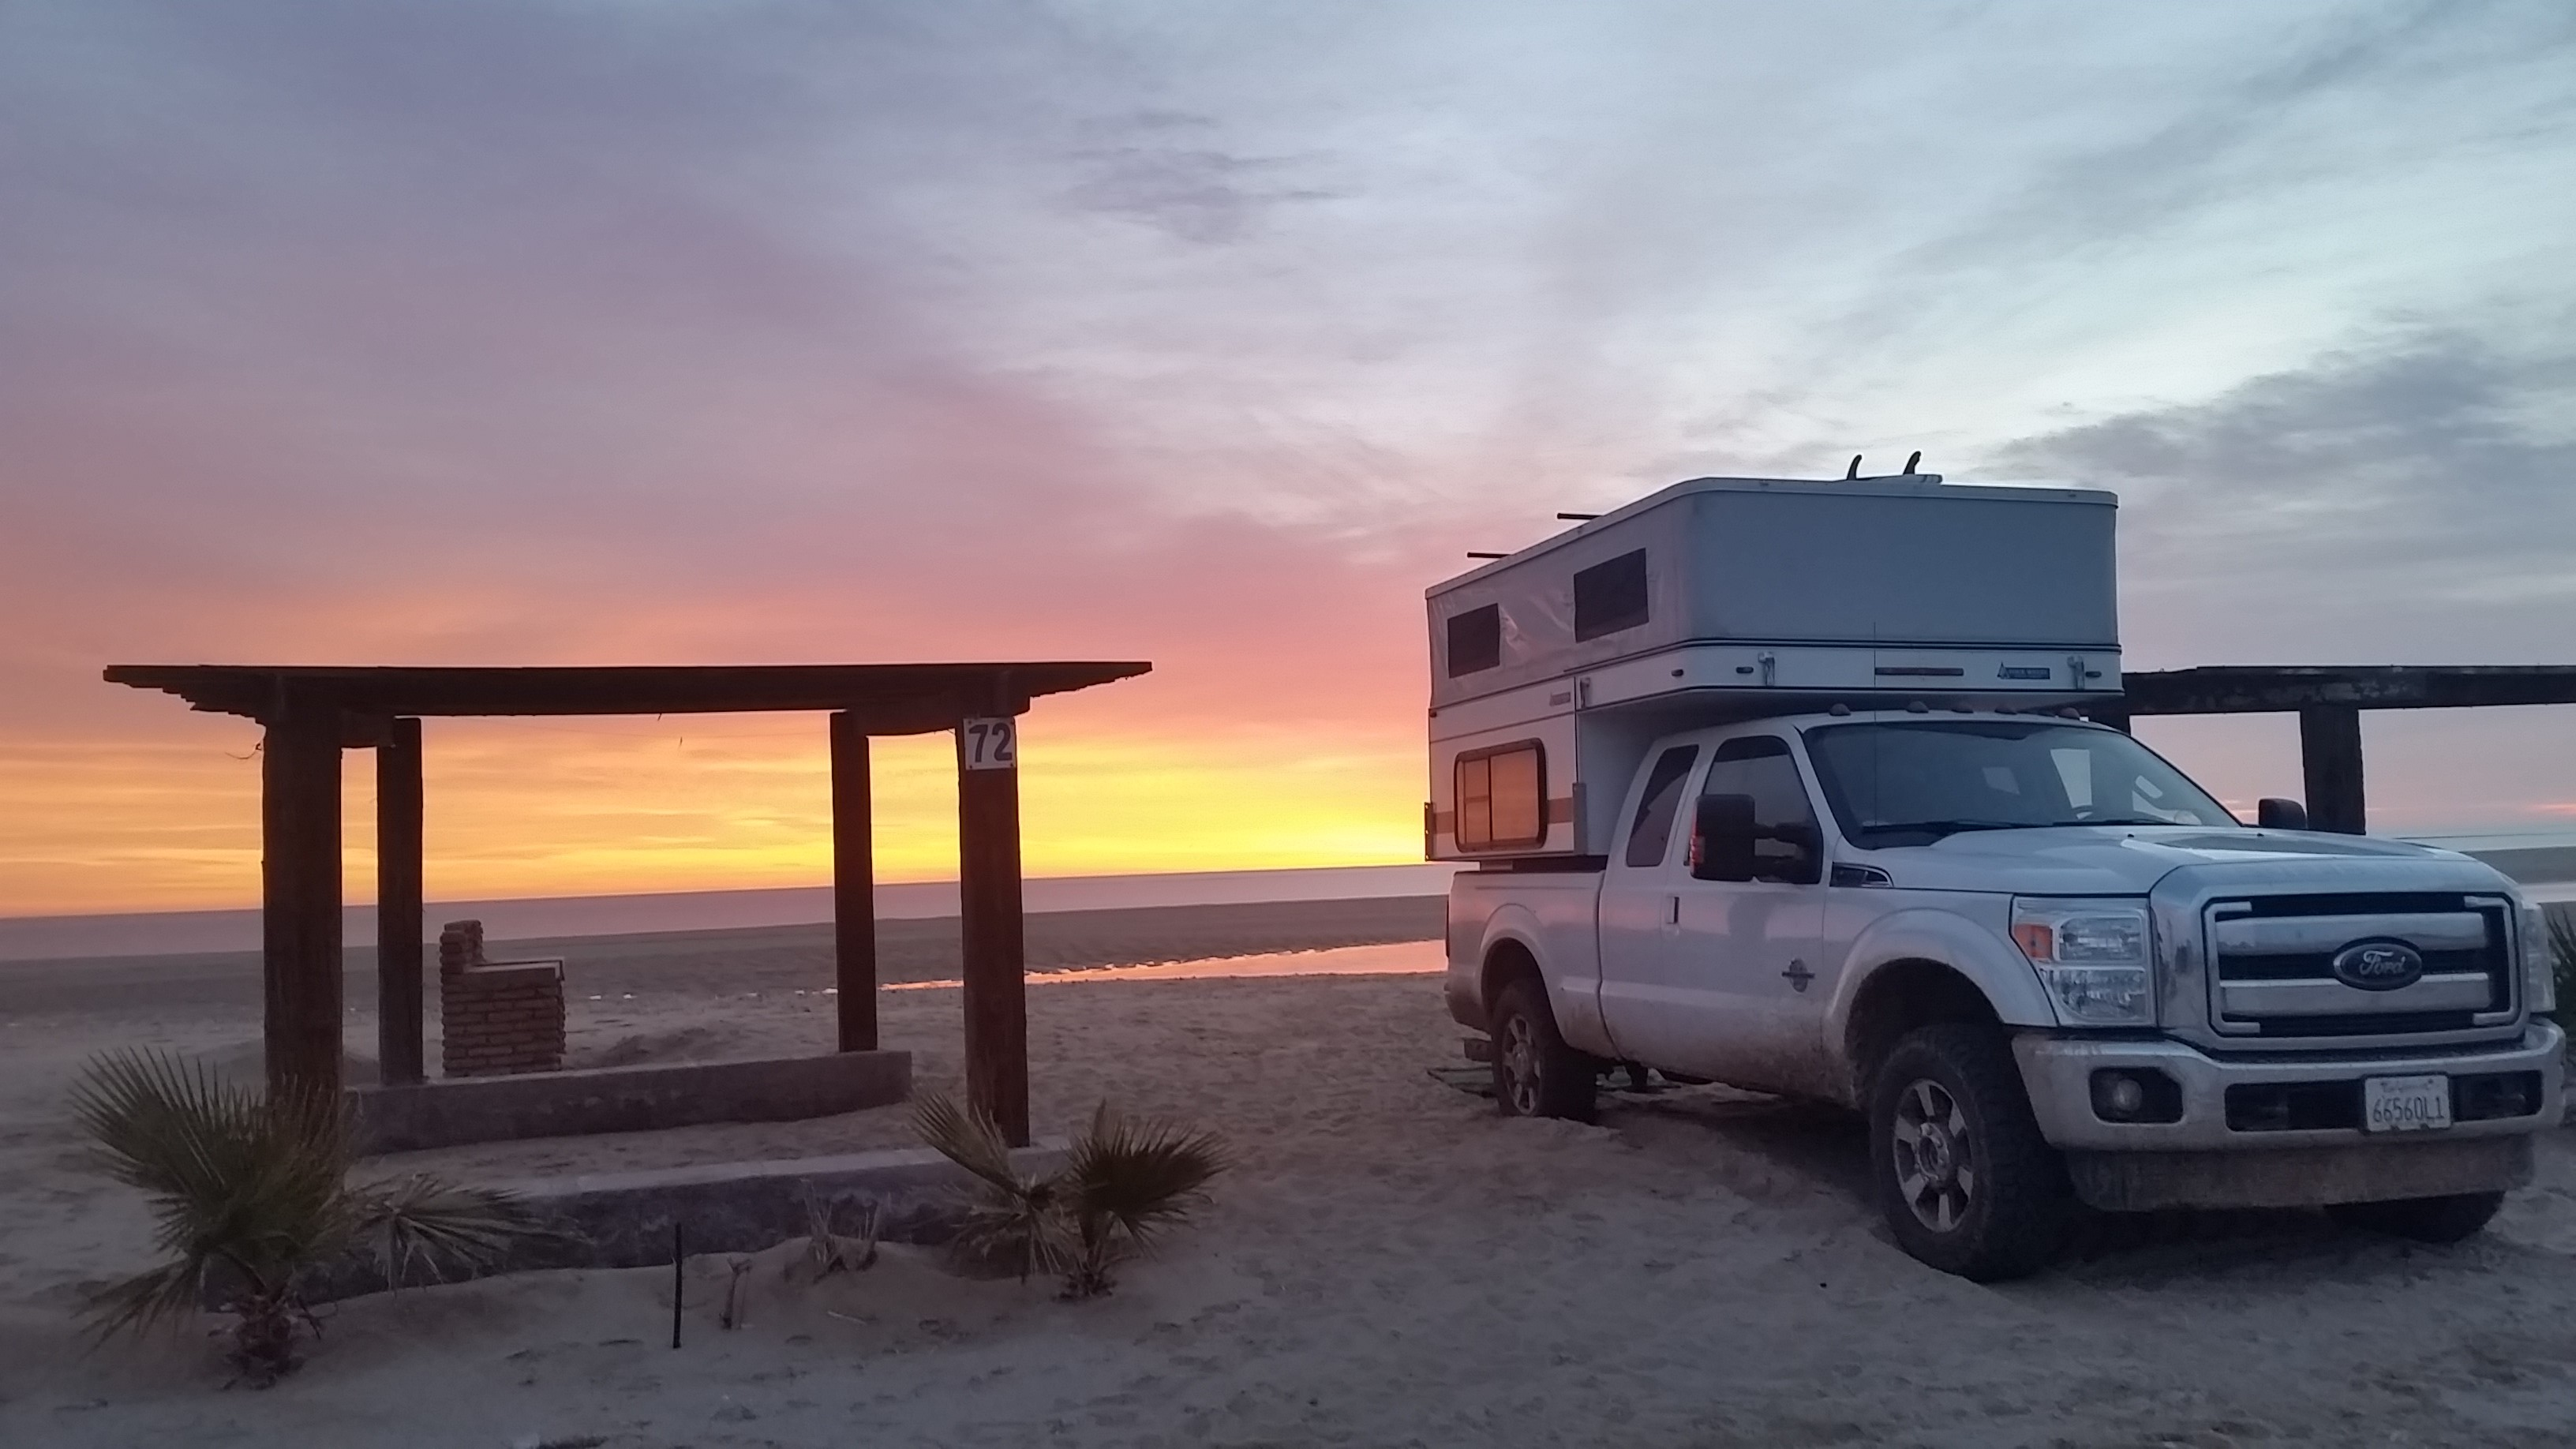 Enjoying the outdoors at sunset in the camper!. Ford w. 2019 Camper Grandby 2015